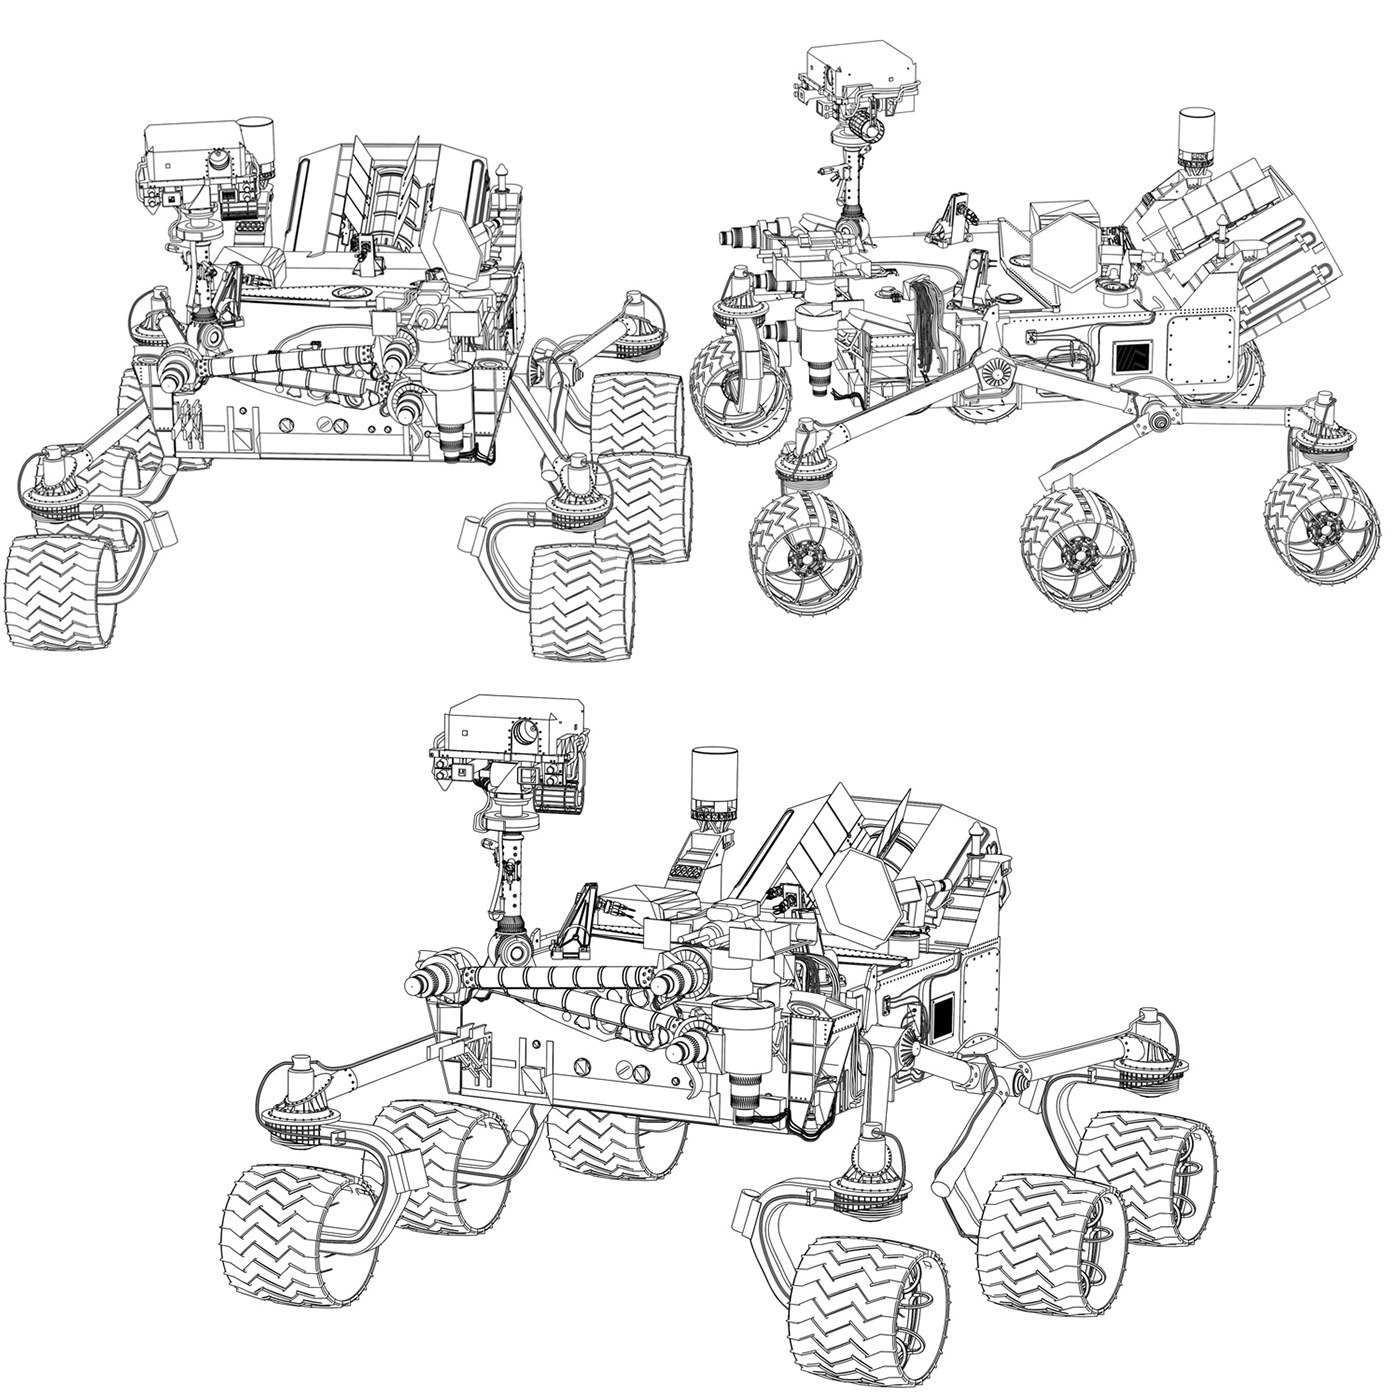 Technical Illustrations, Line Drawings, and Cutaways on